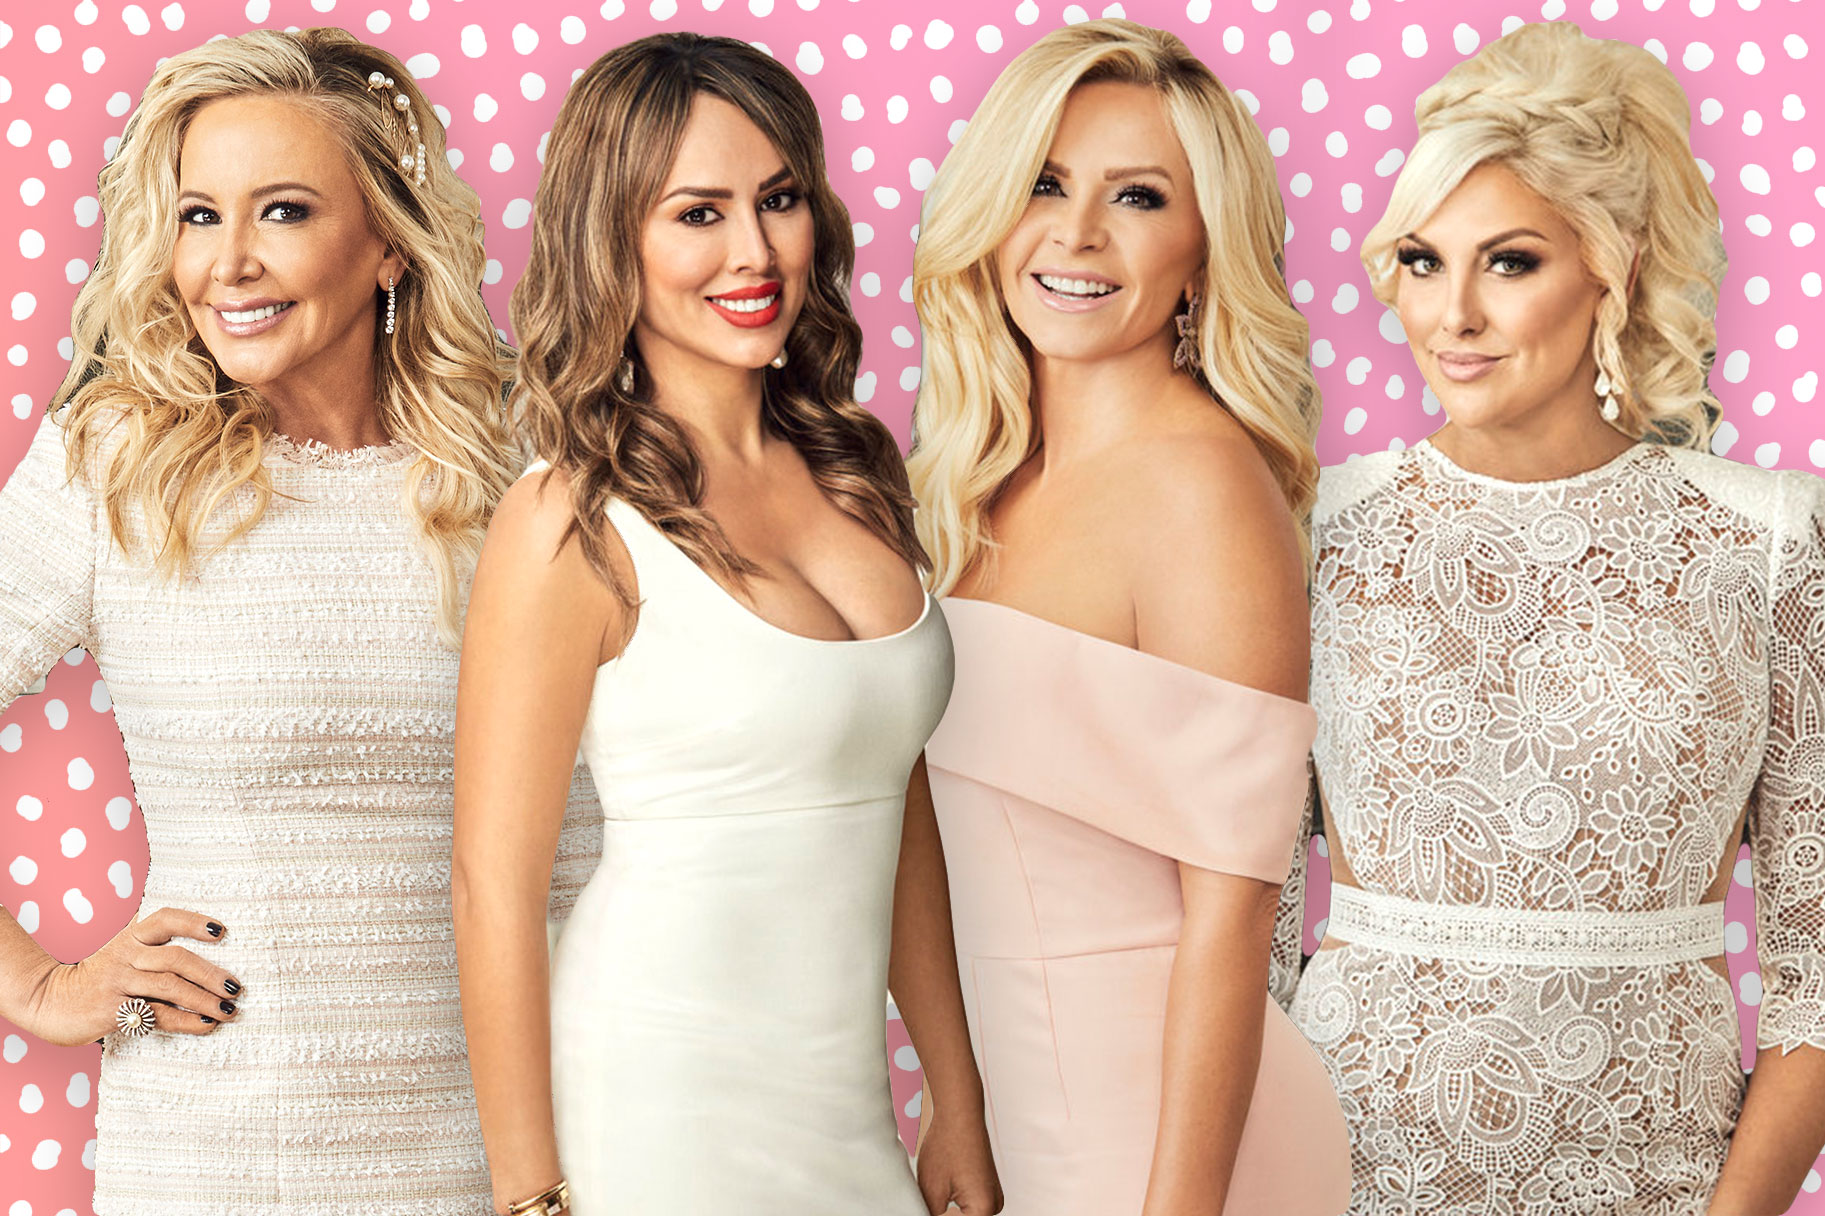 The Exquisite Outfits of The Real Housewives of Orange